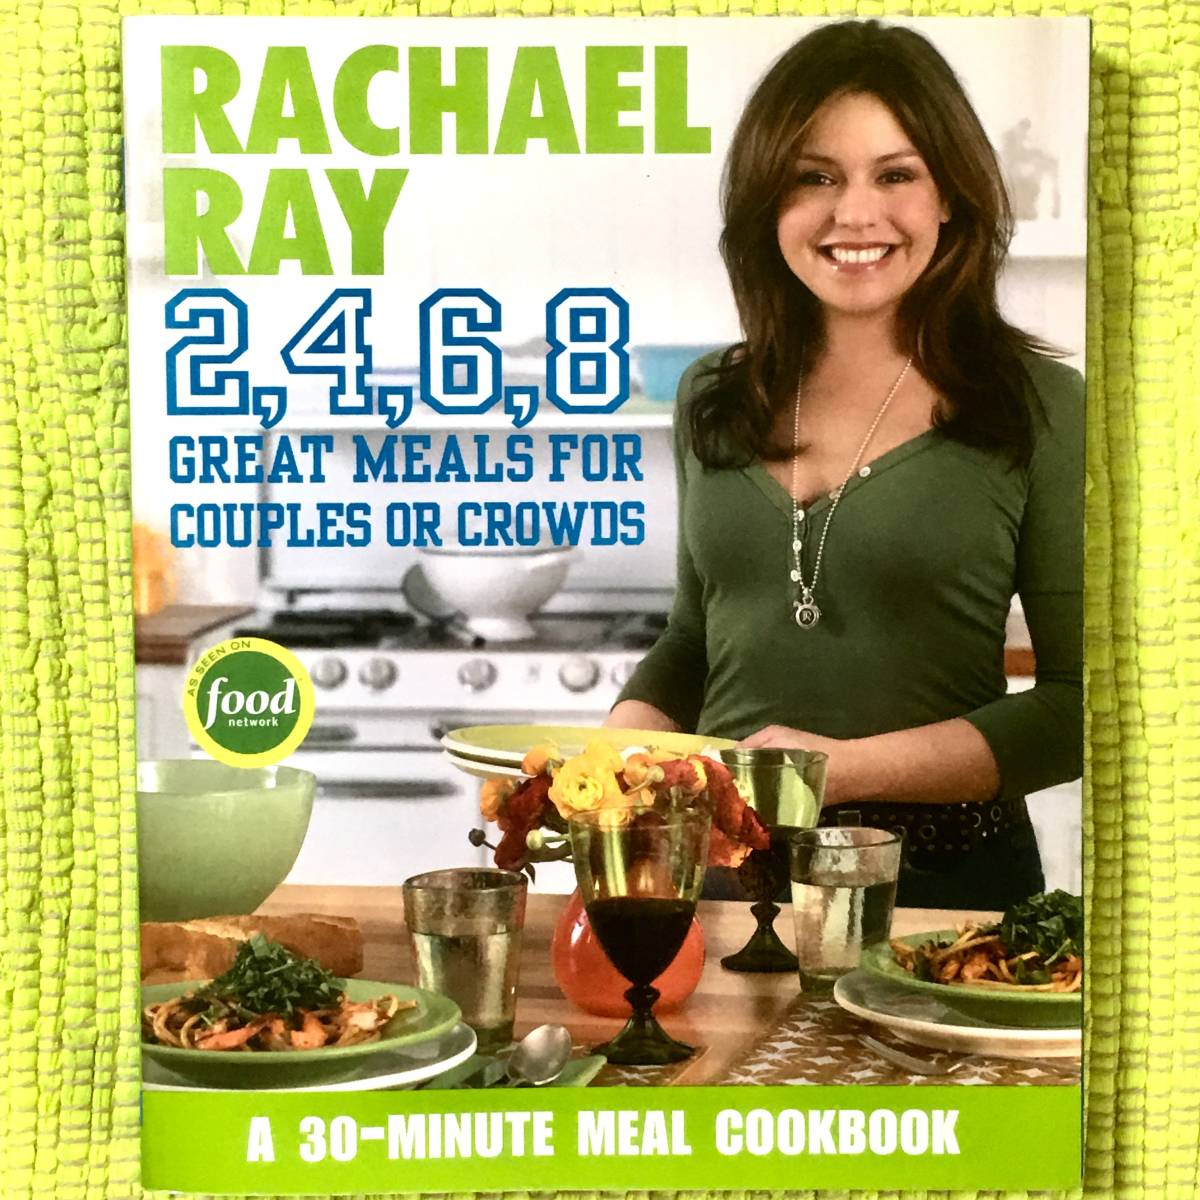 RACHAEL RAY料理のレシピ本2,4,6,8 GREAT MEALS FOR COUPLES OR CROWDS ♪